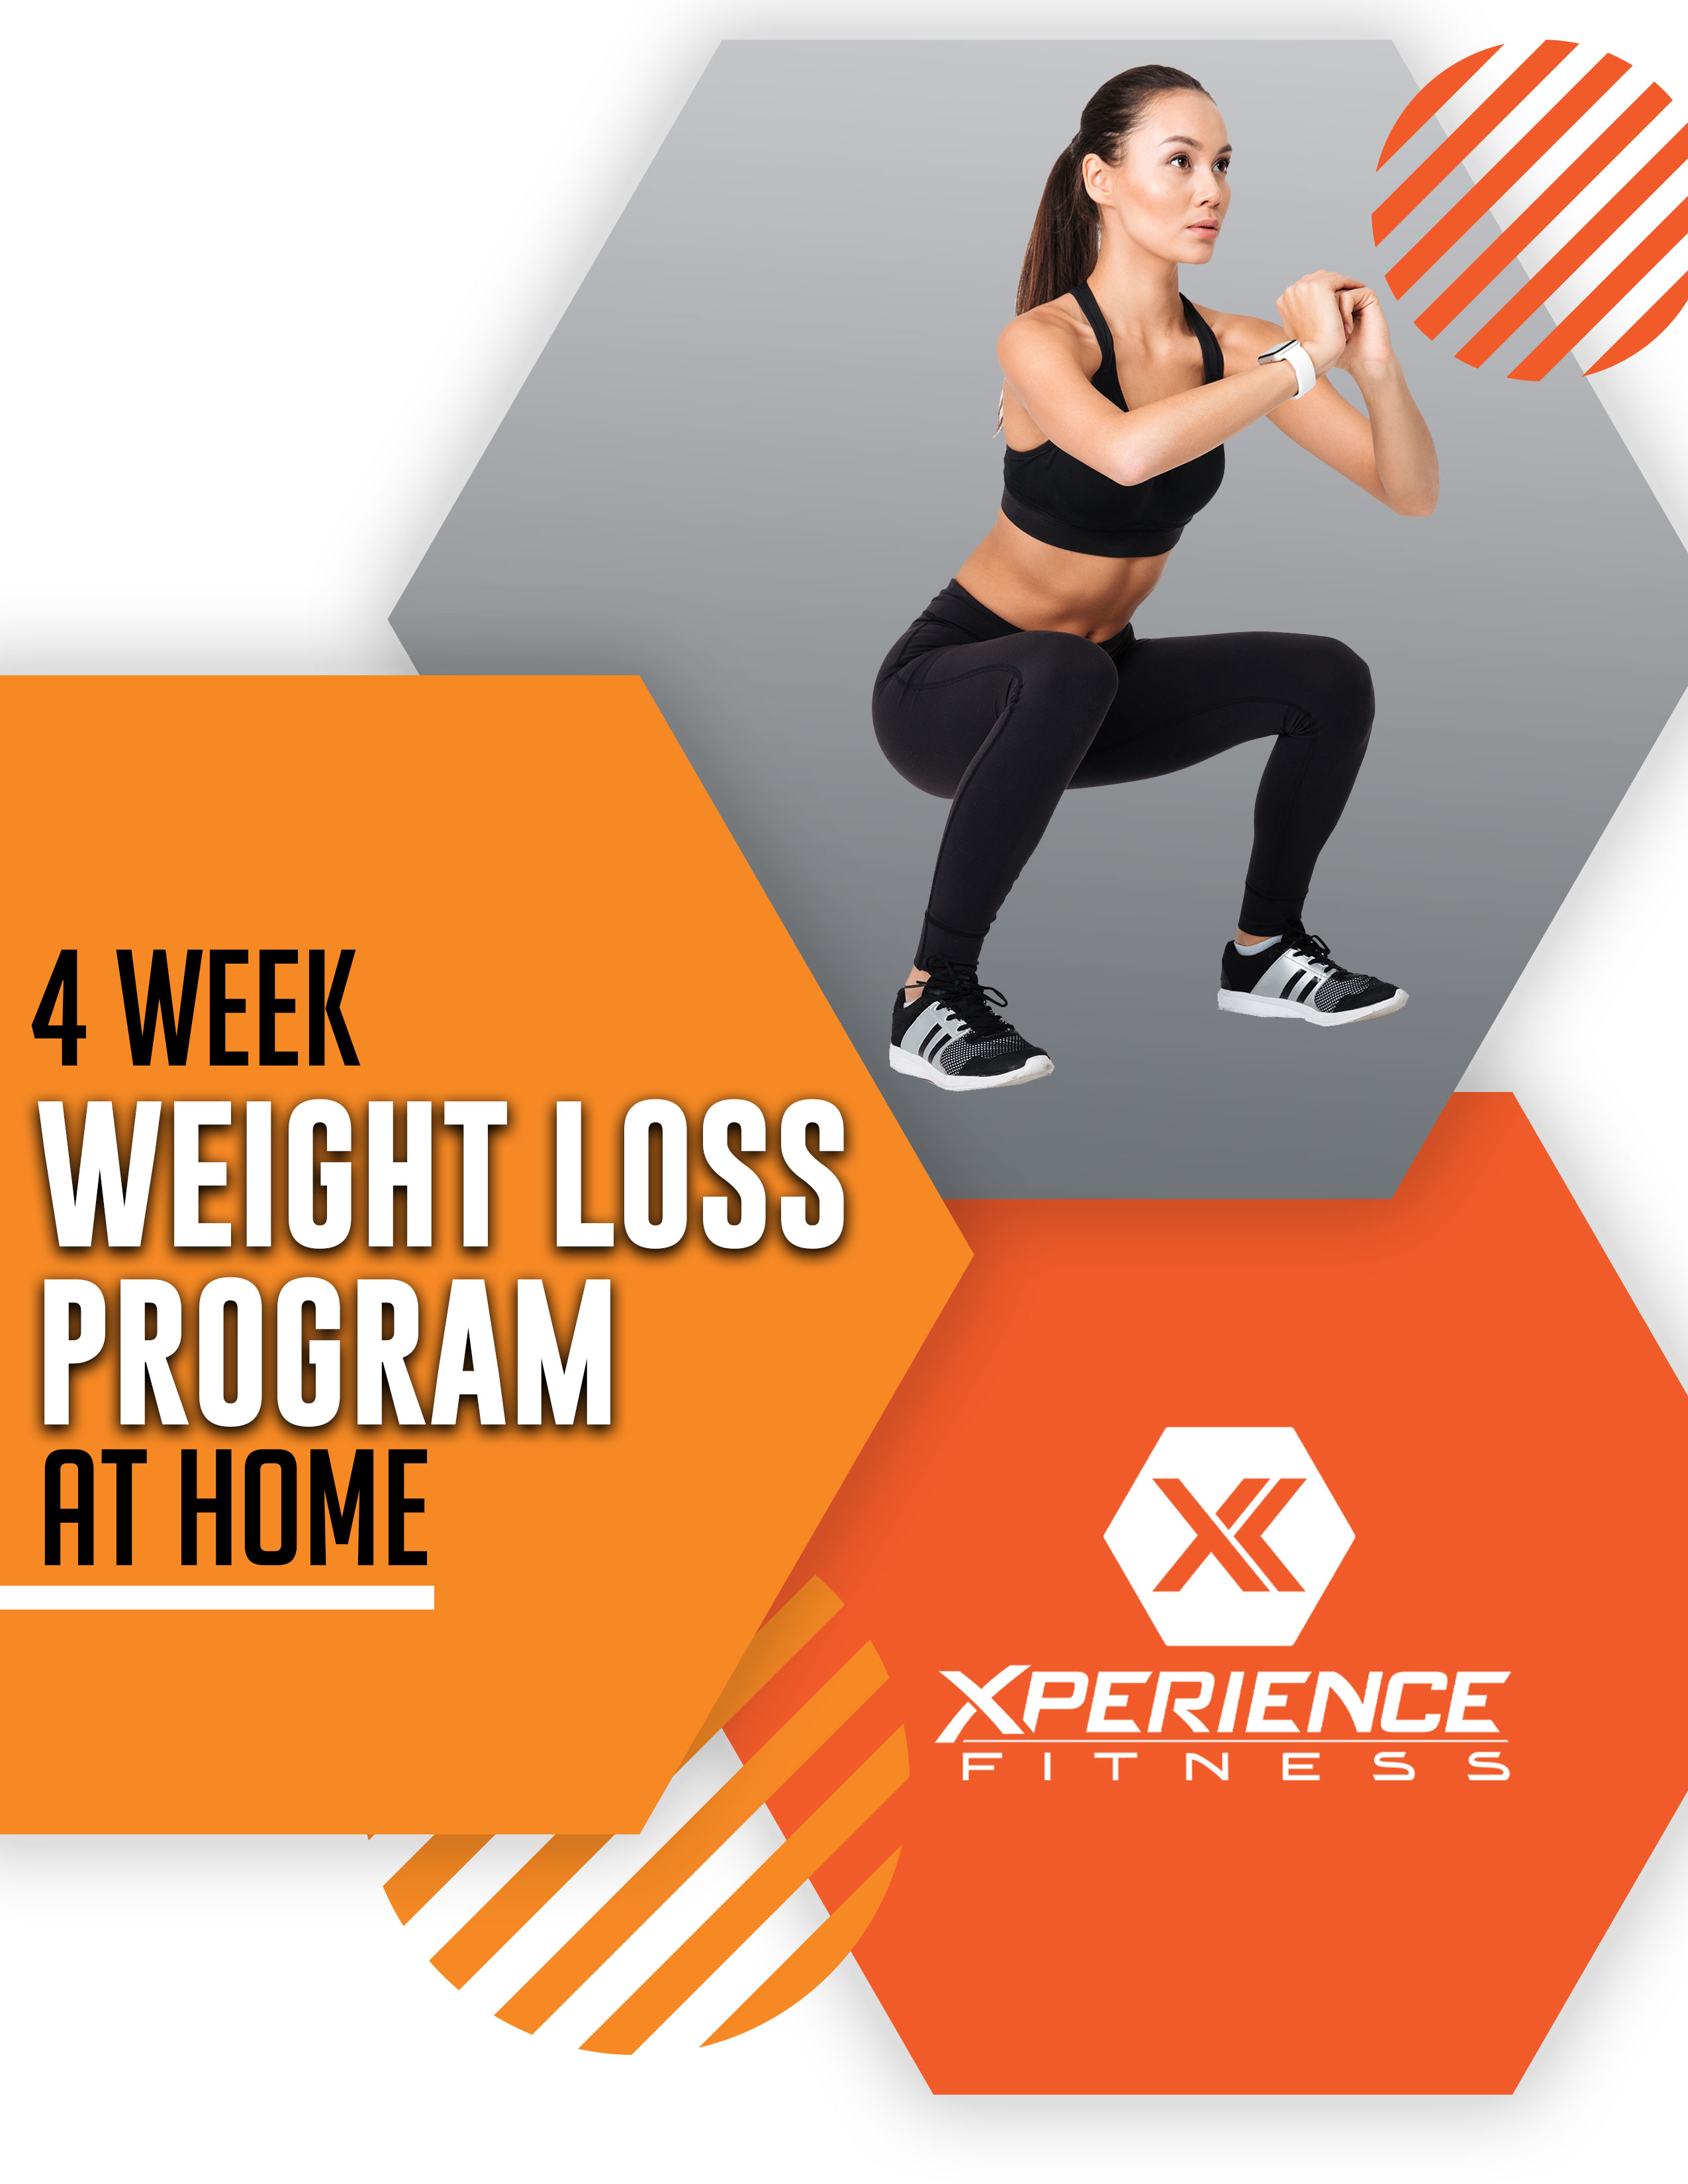 4 Week Weight Loss Program At Home Xperience Fitness